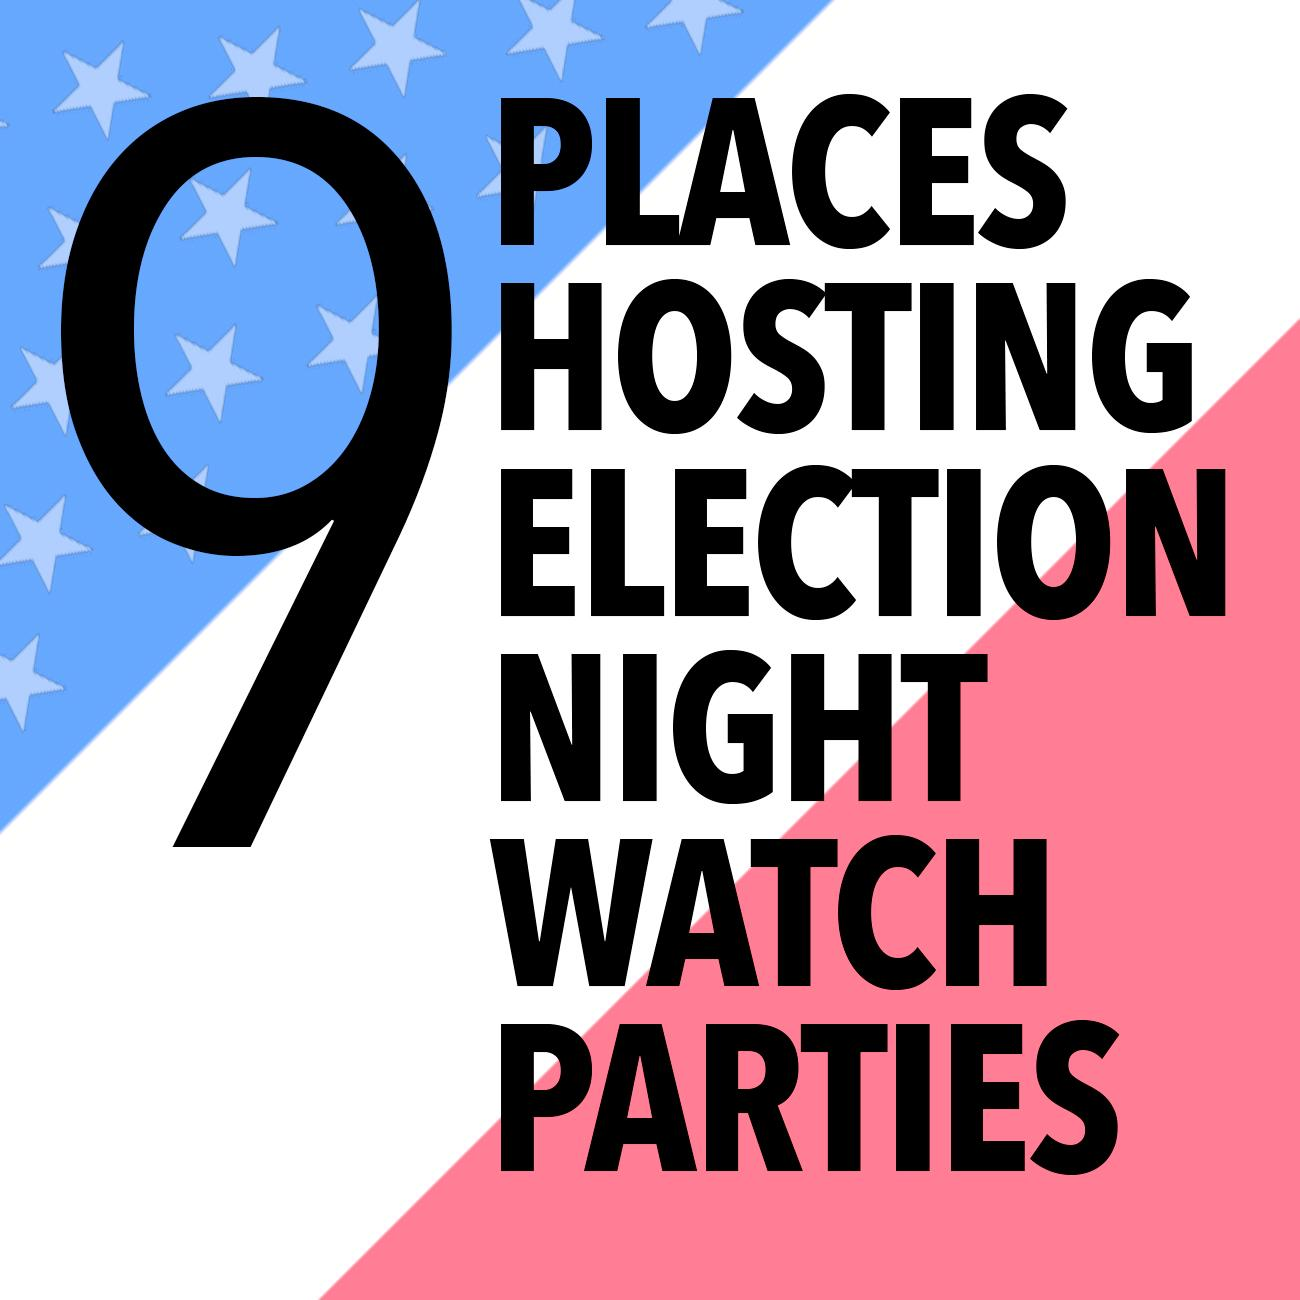 NOTE: Cincinnati Refined does not endorse any political party or figure. This gallery is solely intended to outline nine places that are having election night watch parties.